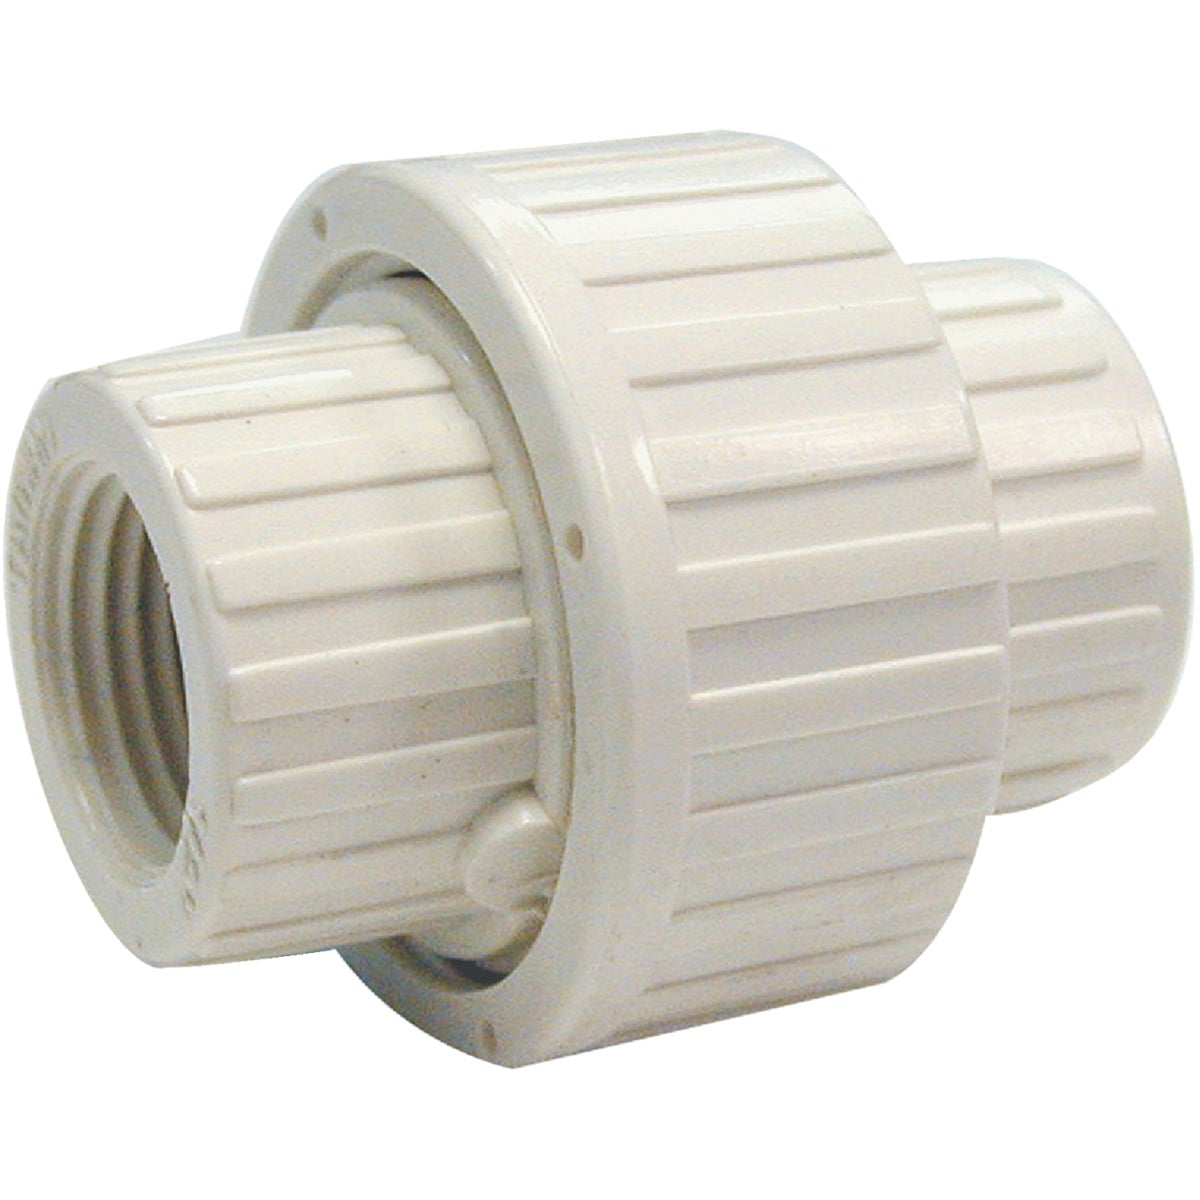 "WHT 1-1/4"" FIP PVC UNION - 164-136 by Mueller B K"